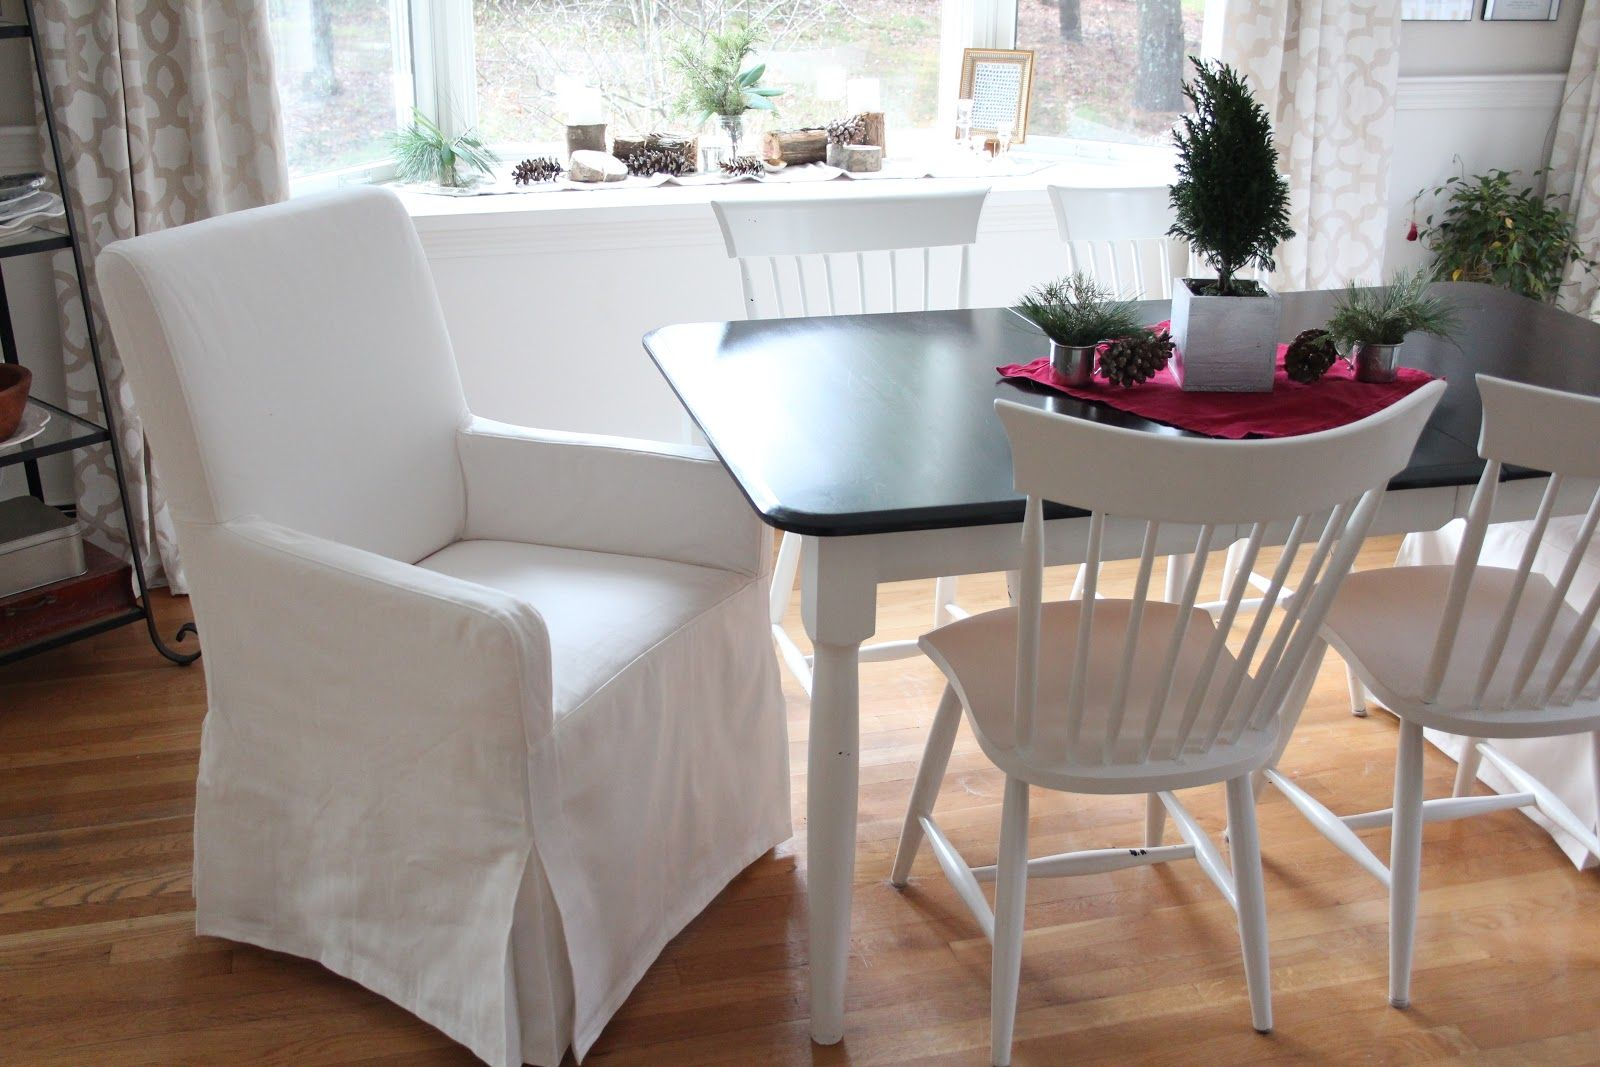 Getting The Wrinkles Out Of Slipcovers